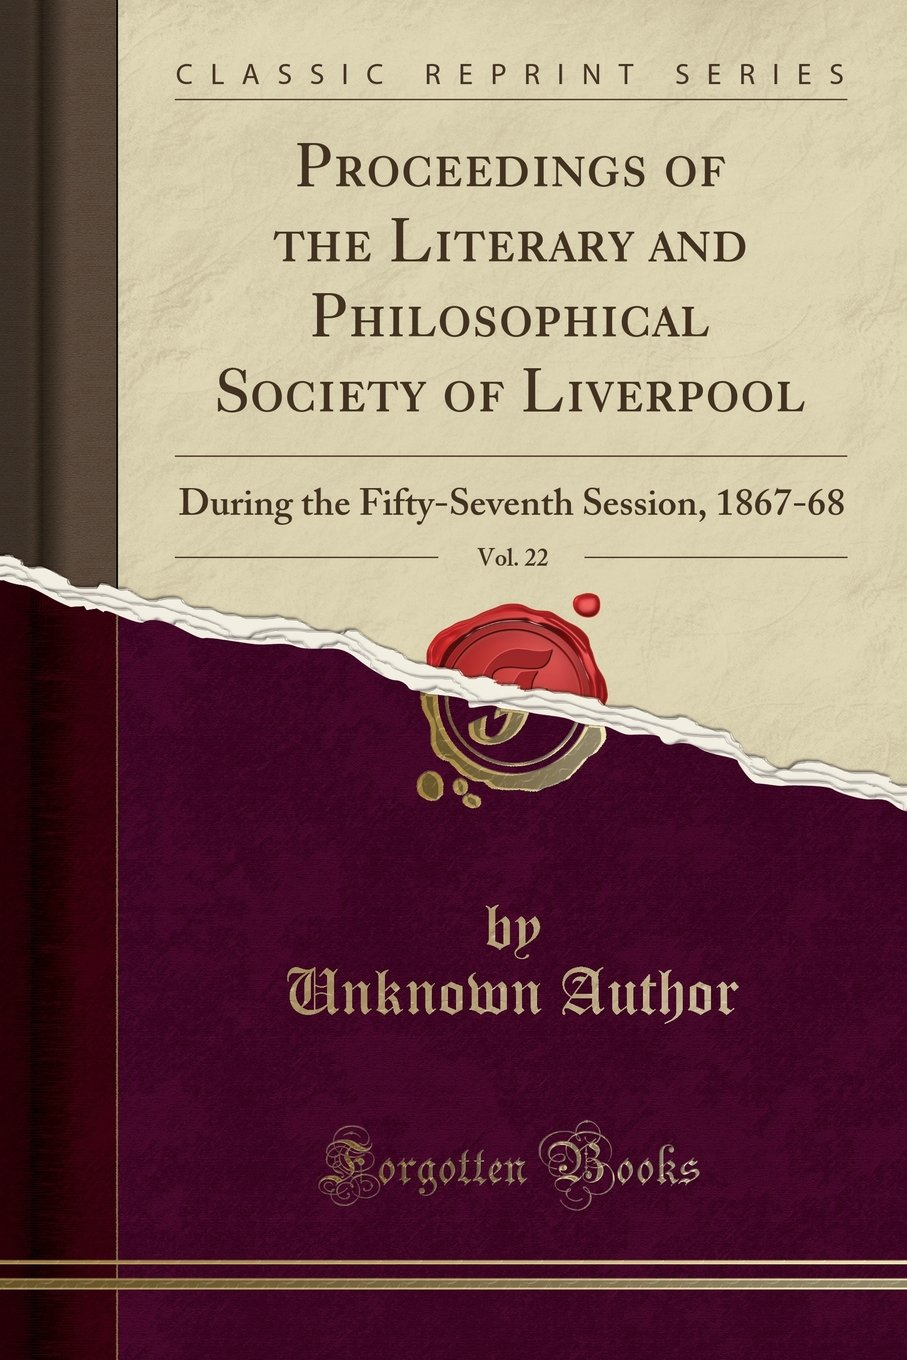 Proceedings of the Literary and Philosophical Society of Liverpool, Vol. 22: During the Fifty-Seventh Session, 1867-68 (Classic Reprint) pdf